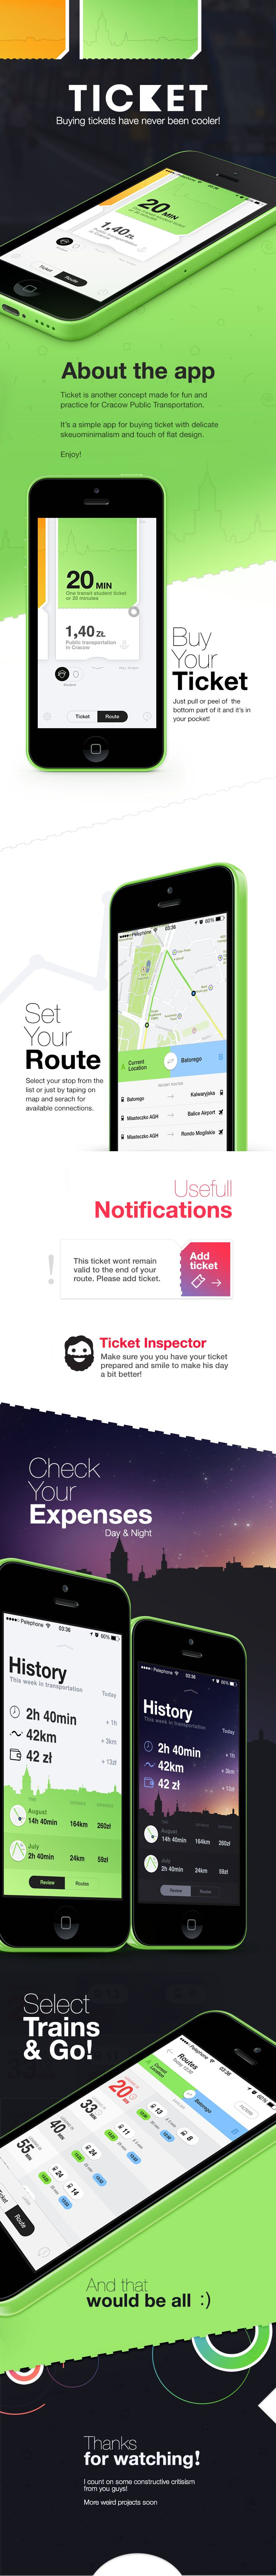 Unique App Design, Ticket #App #Design (http://www.pinterest.com/aldenchong/)